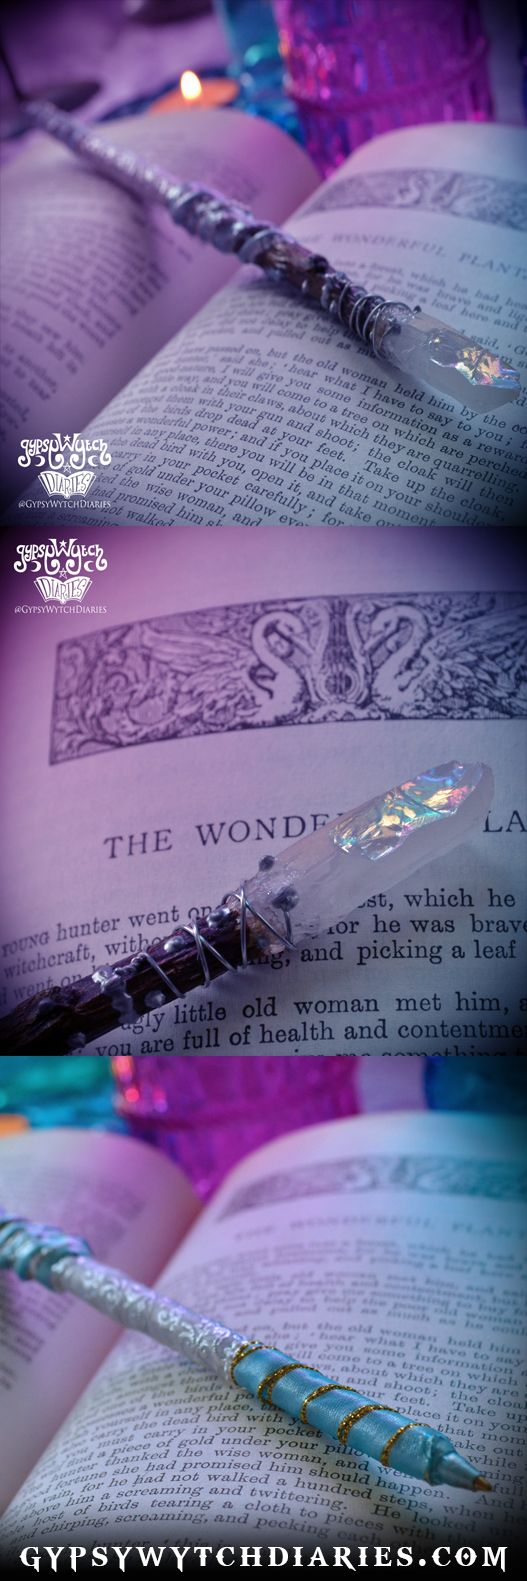 """""""A writer is a wizard, and with every word they tell A thought is woven into life, just like a magic spell."""""""